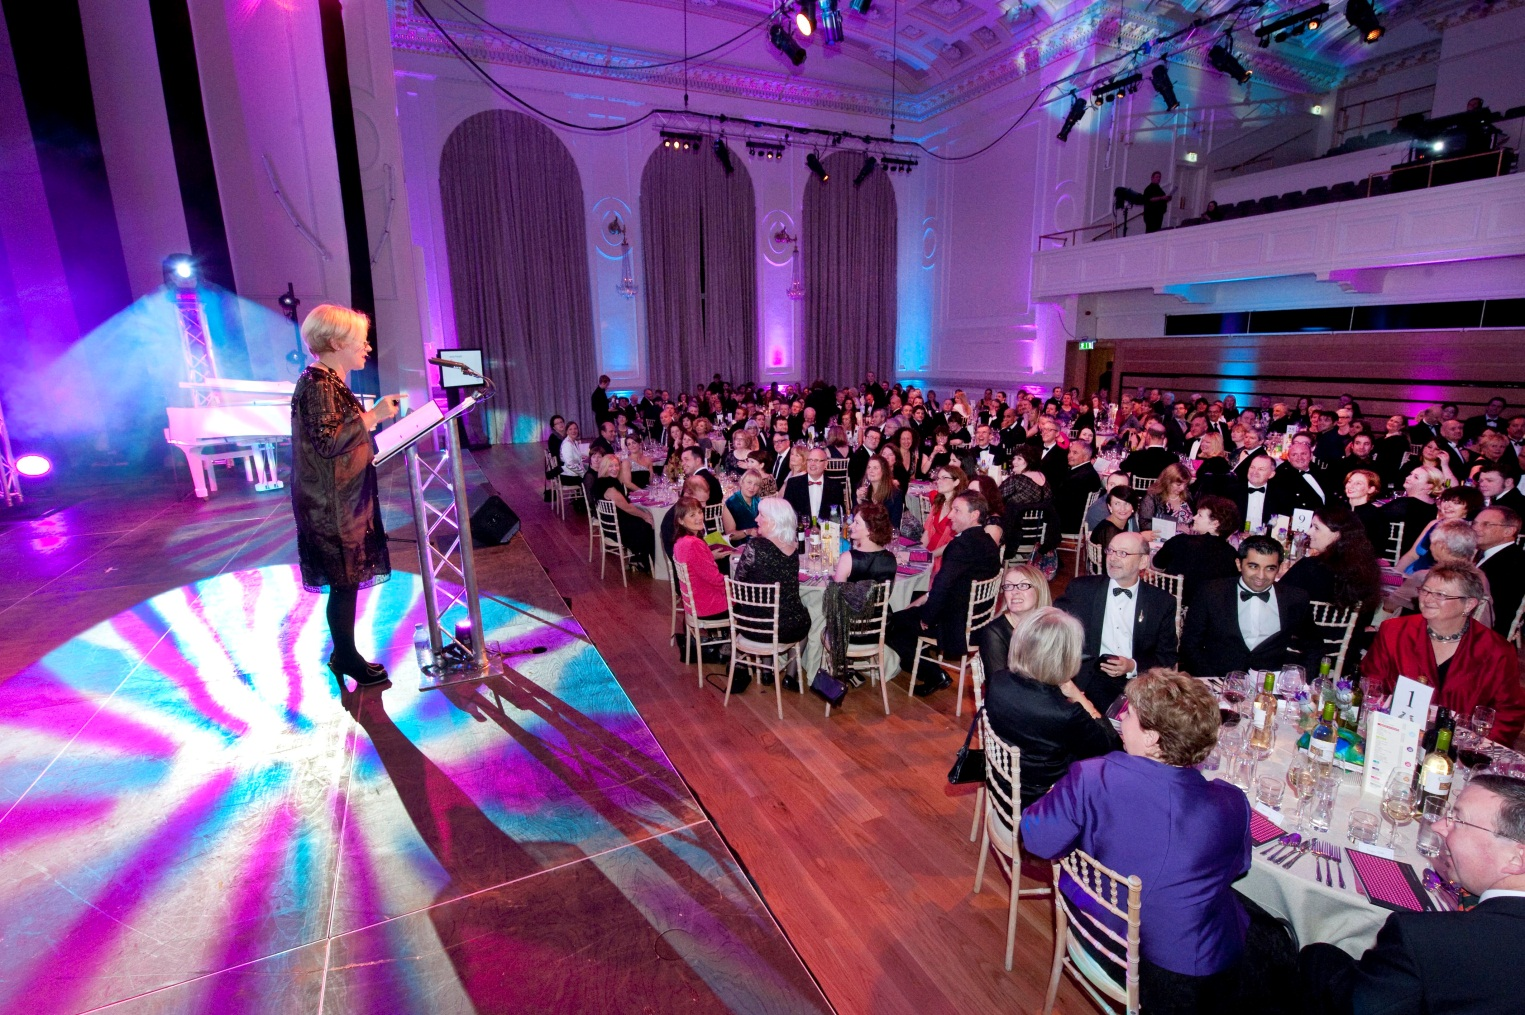 2012_Awards_event_at_Assembly_Rooms_Edinburgh_Photographer_Douglas_Robertson